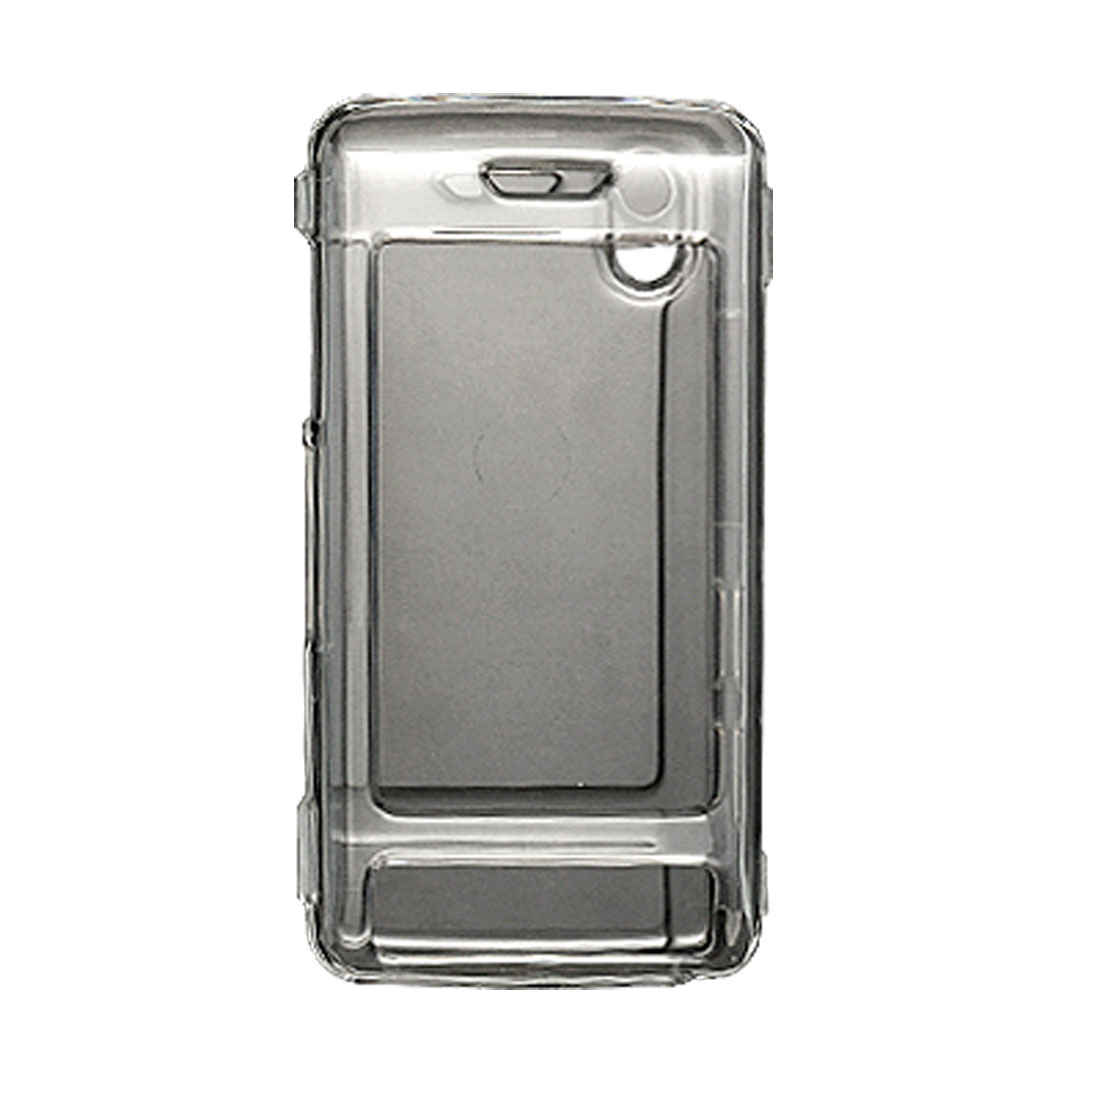 Clear Hard Plastic Case for LG KP500 Mobile